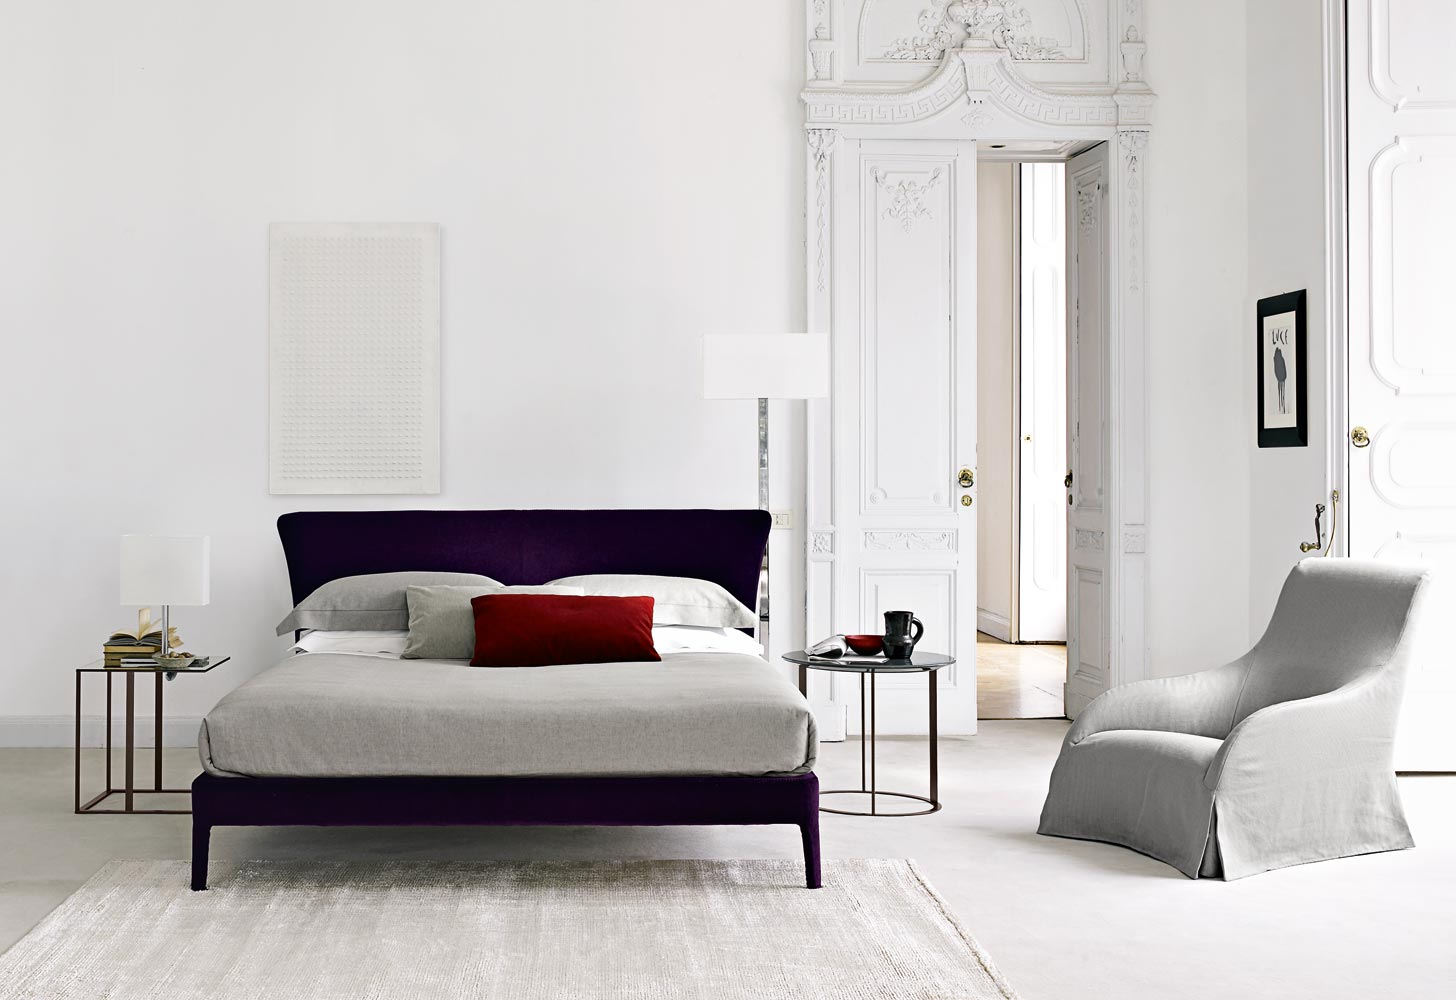 B&b Italia Maxalto Xilos Maxalto B Andb Italia Febo Bed Buy From Campbell Watson Uk